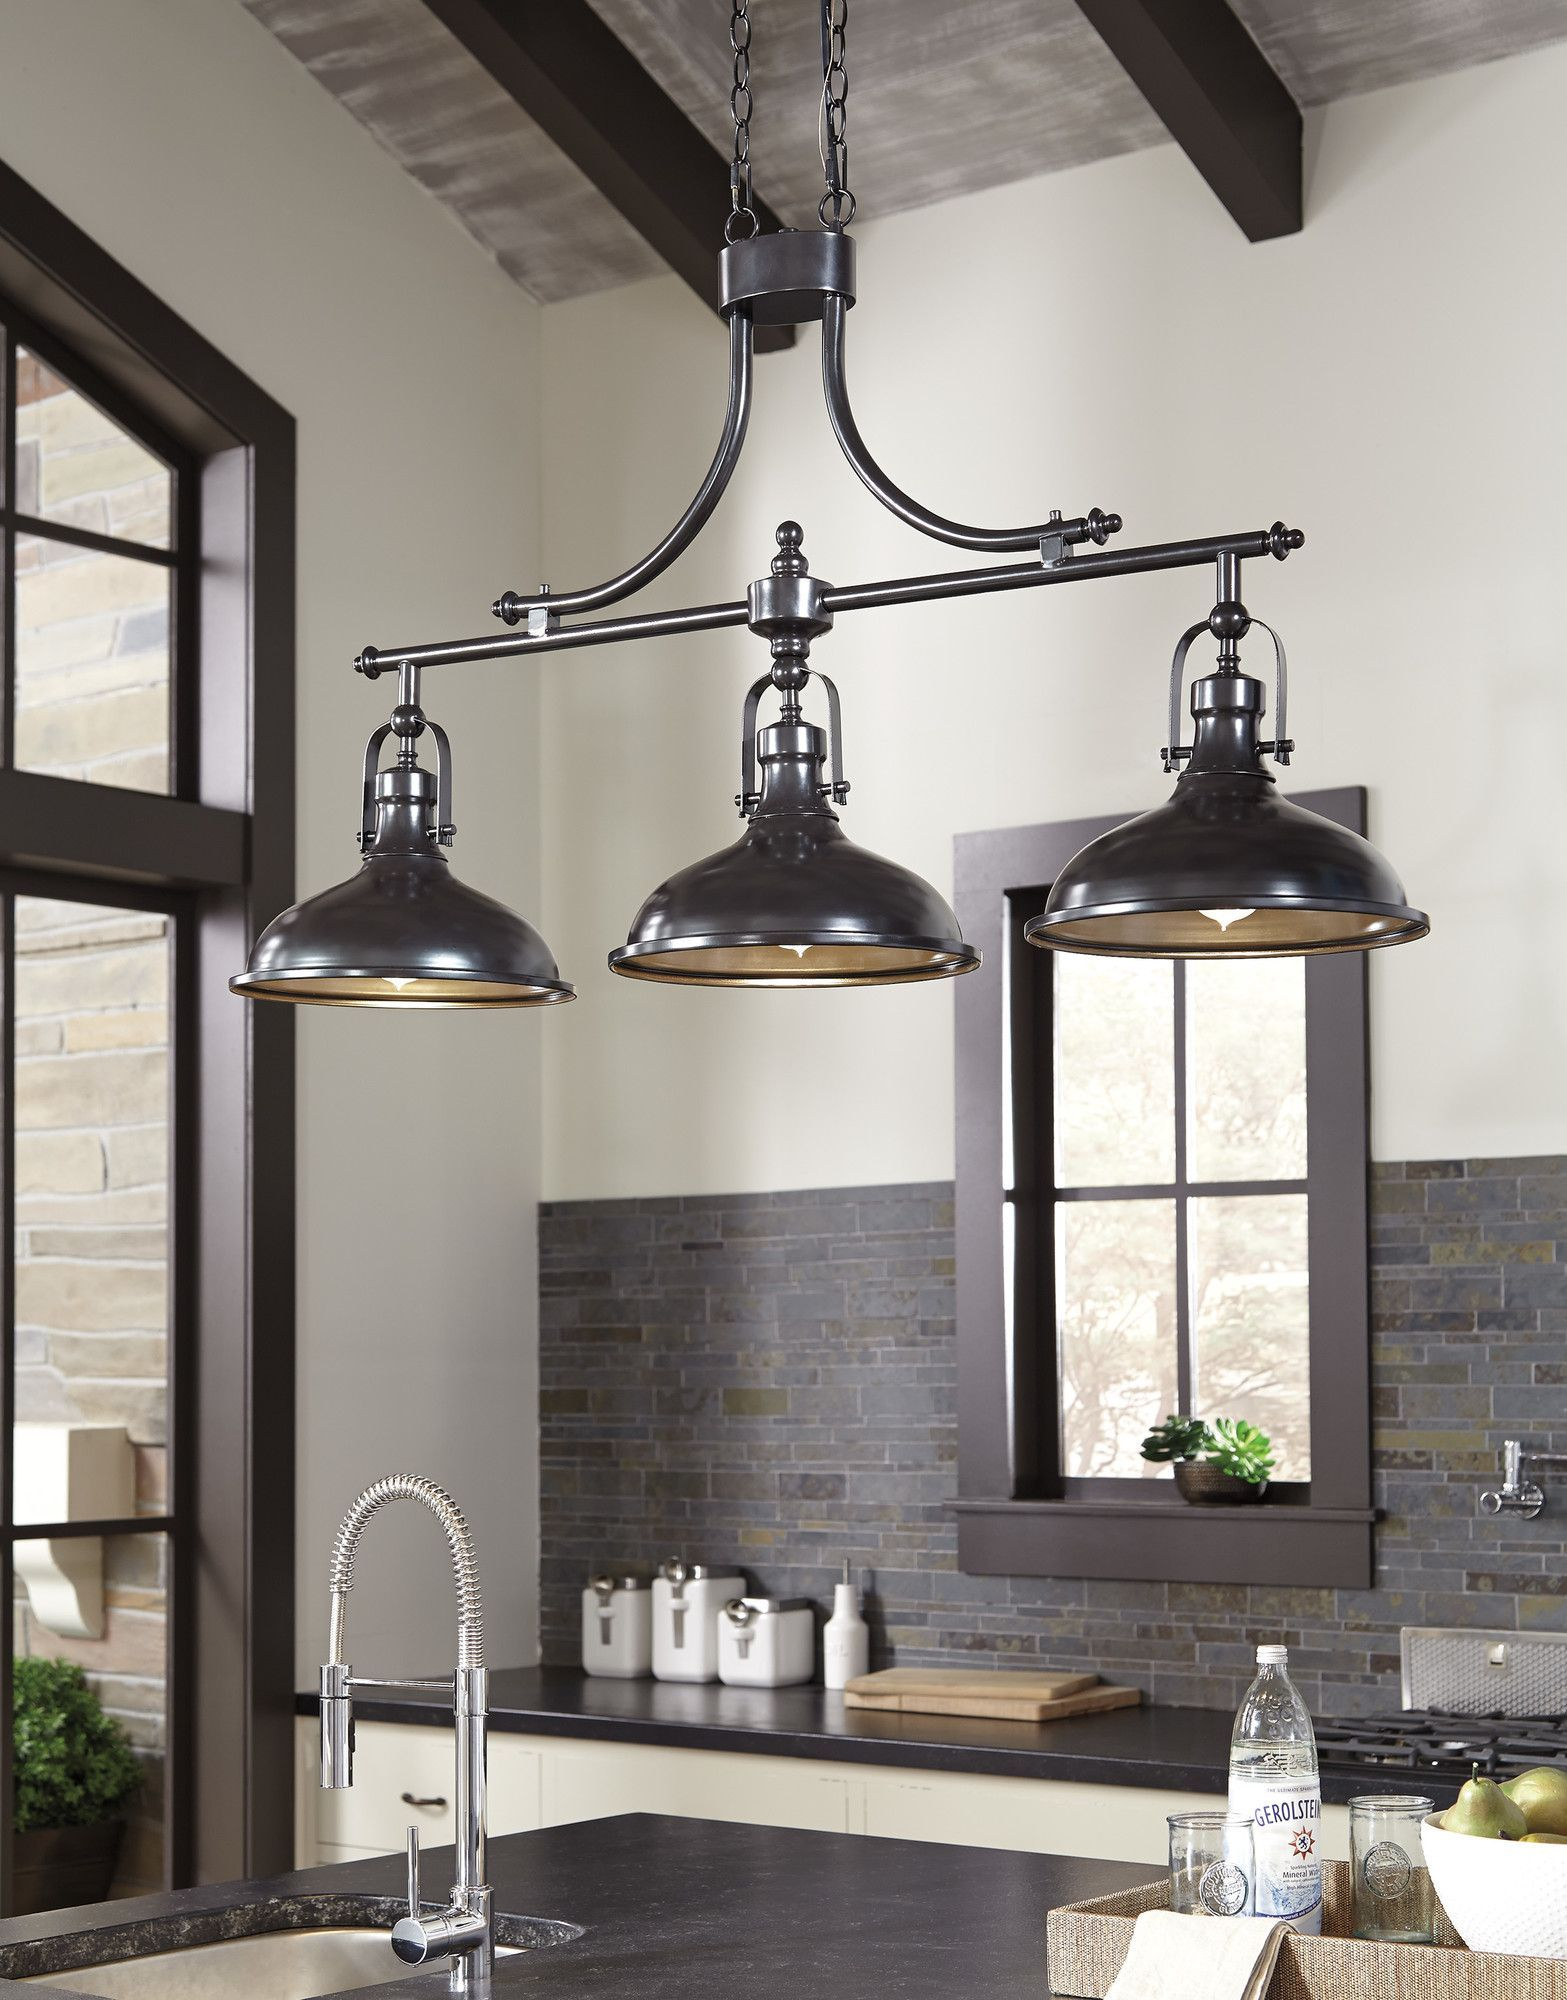 Joseph 3 light kitchen island pendant reviews joss main joseph 3 light kitchen island pendant reviews joss main aloadofball